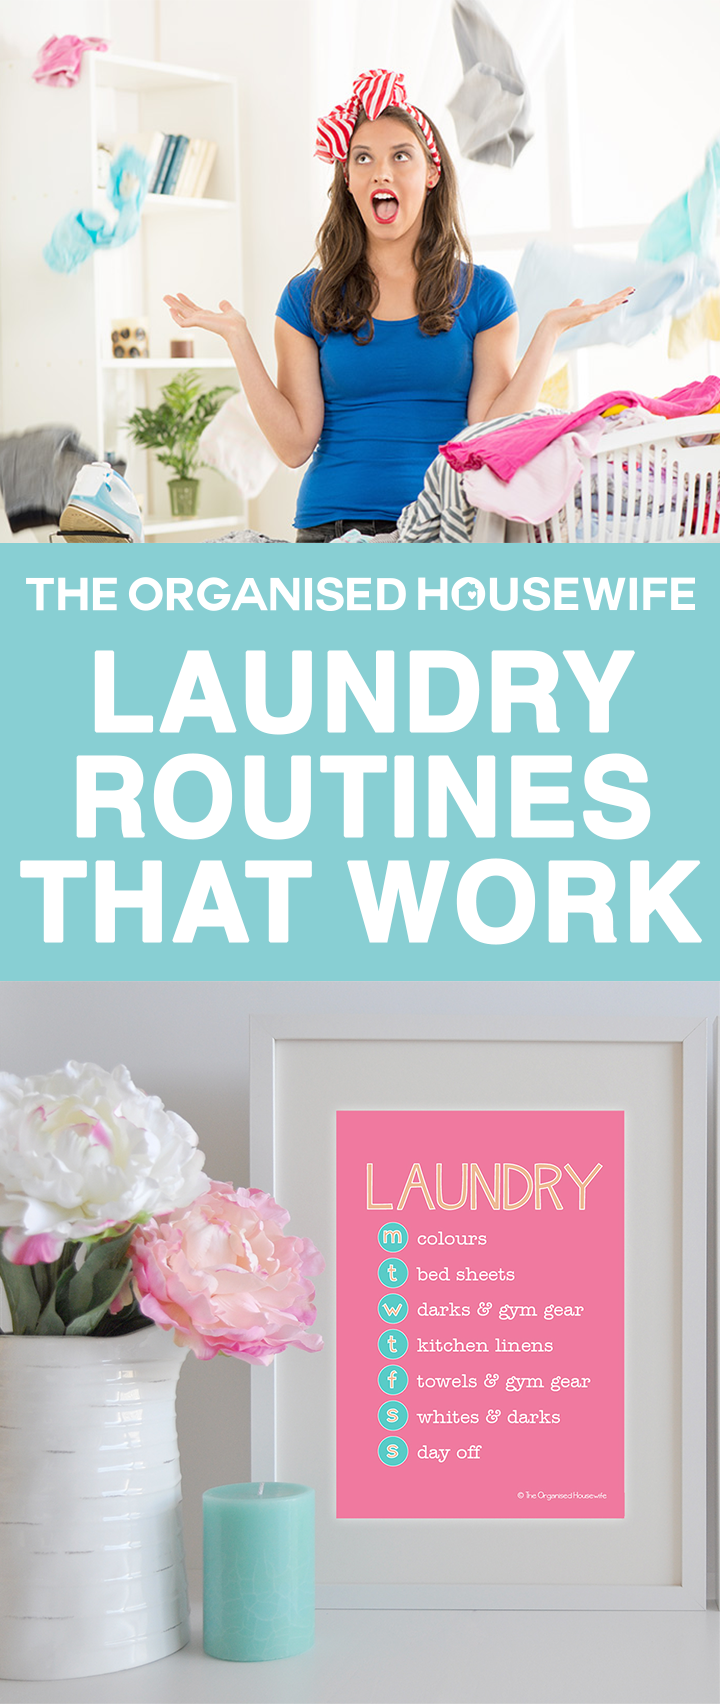 Laundry-Routines-that-Work-#1-PIN